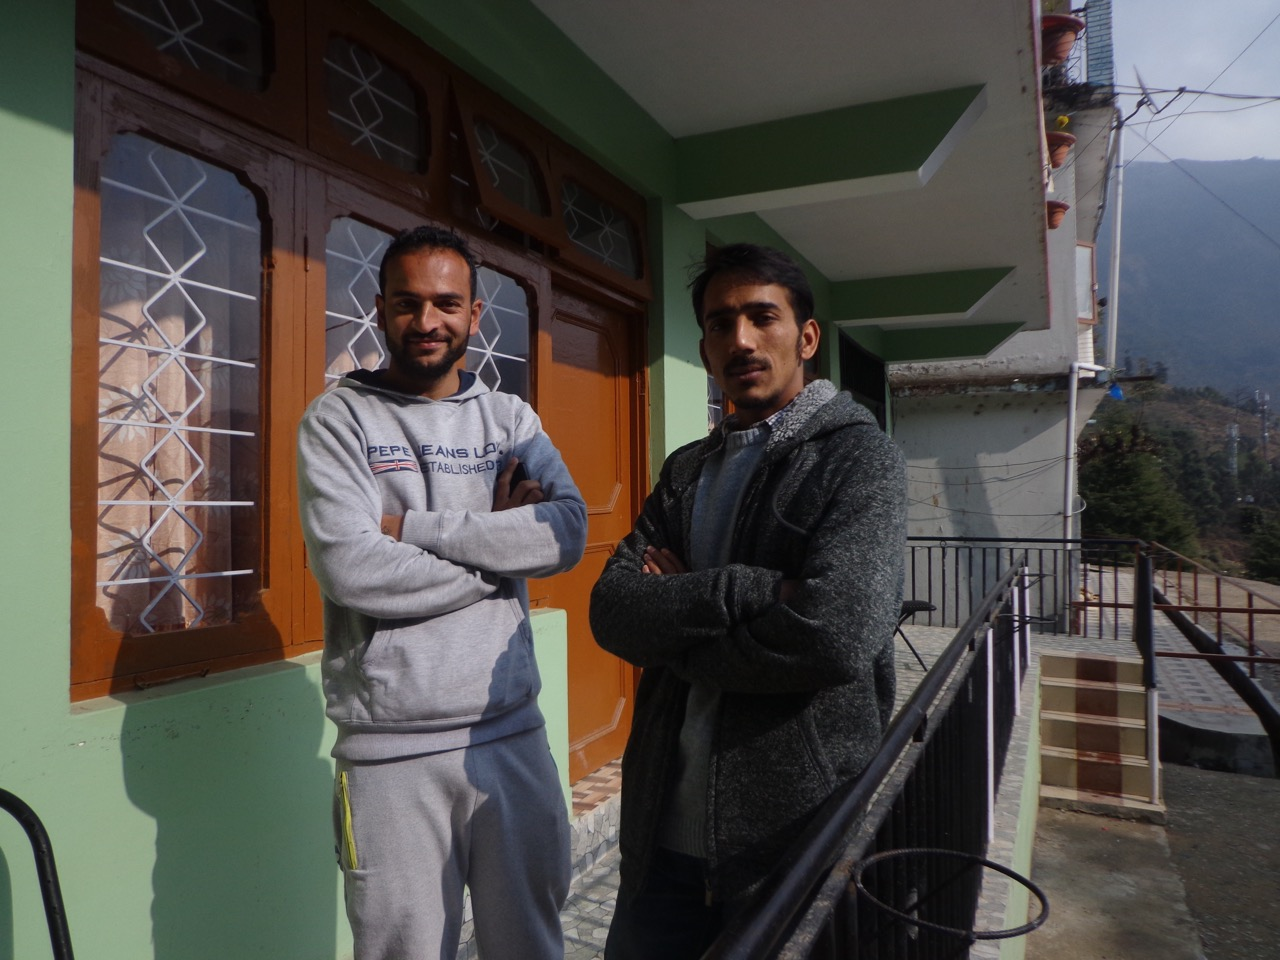 Vinay and Ganesh posing in front of the staff room of Backpackers Inn.